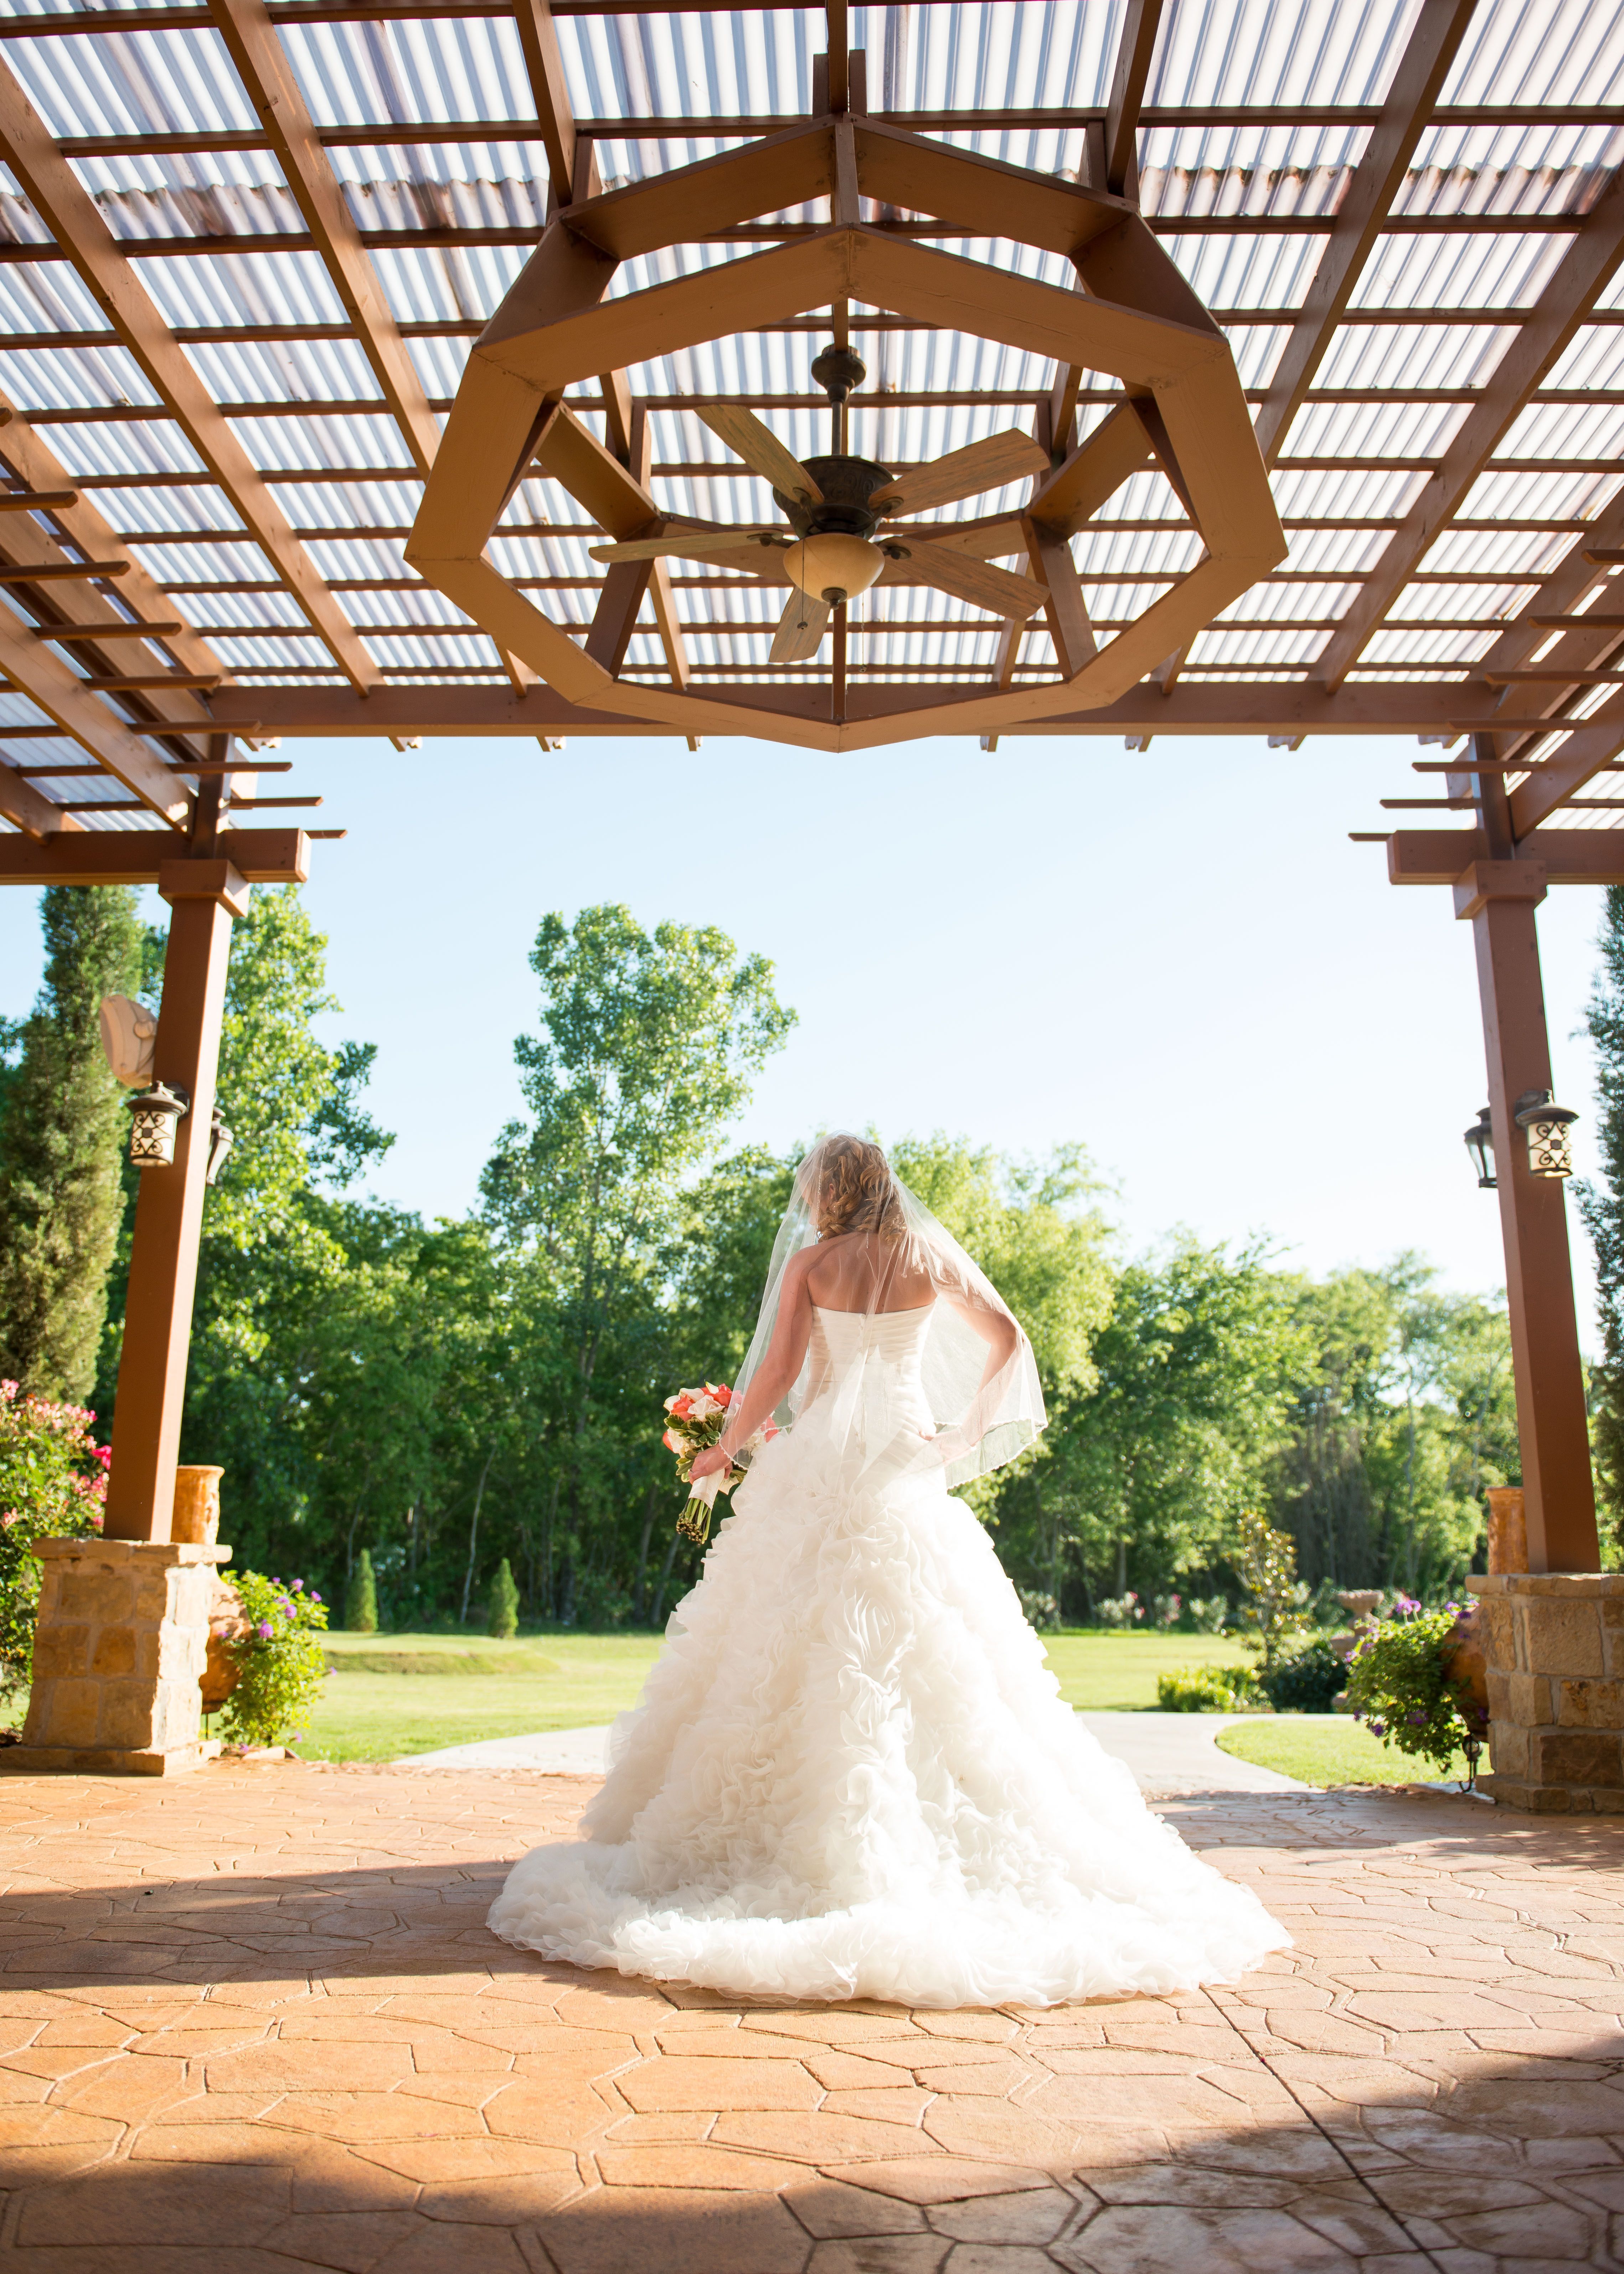 Bridal Pictures Outdoor Wedding Weddings In Houston Ceremony Clear